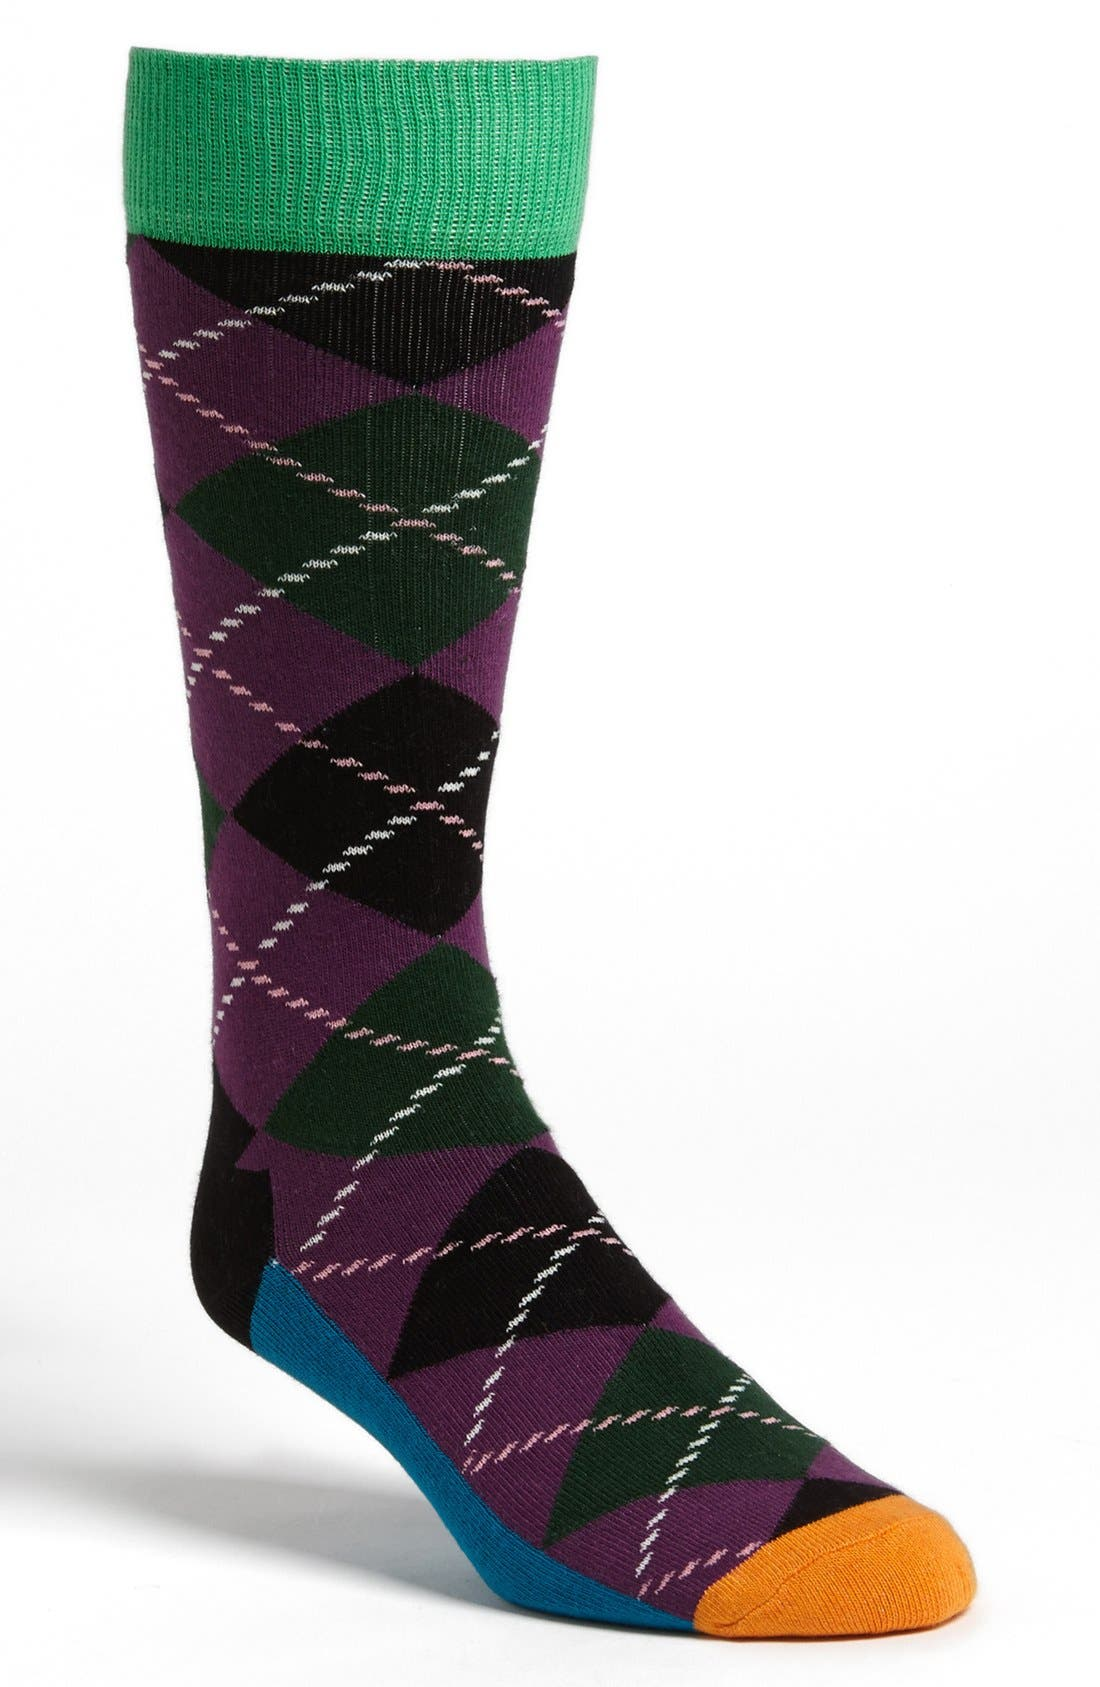 Alternate Image 1 Selected - Happy Socks Argyle Patterned Combed Cotton Blend Socks